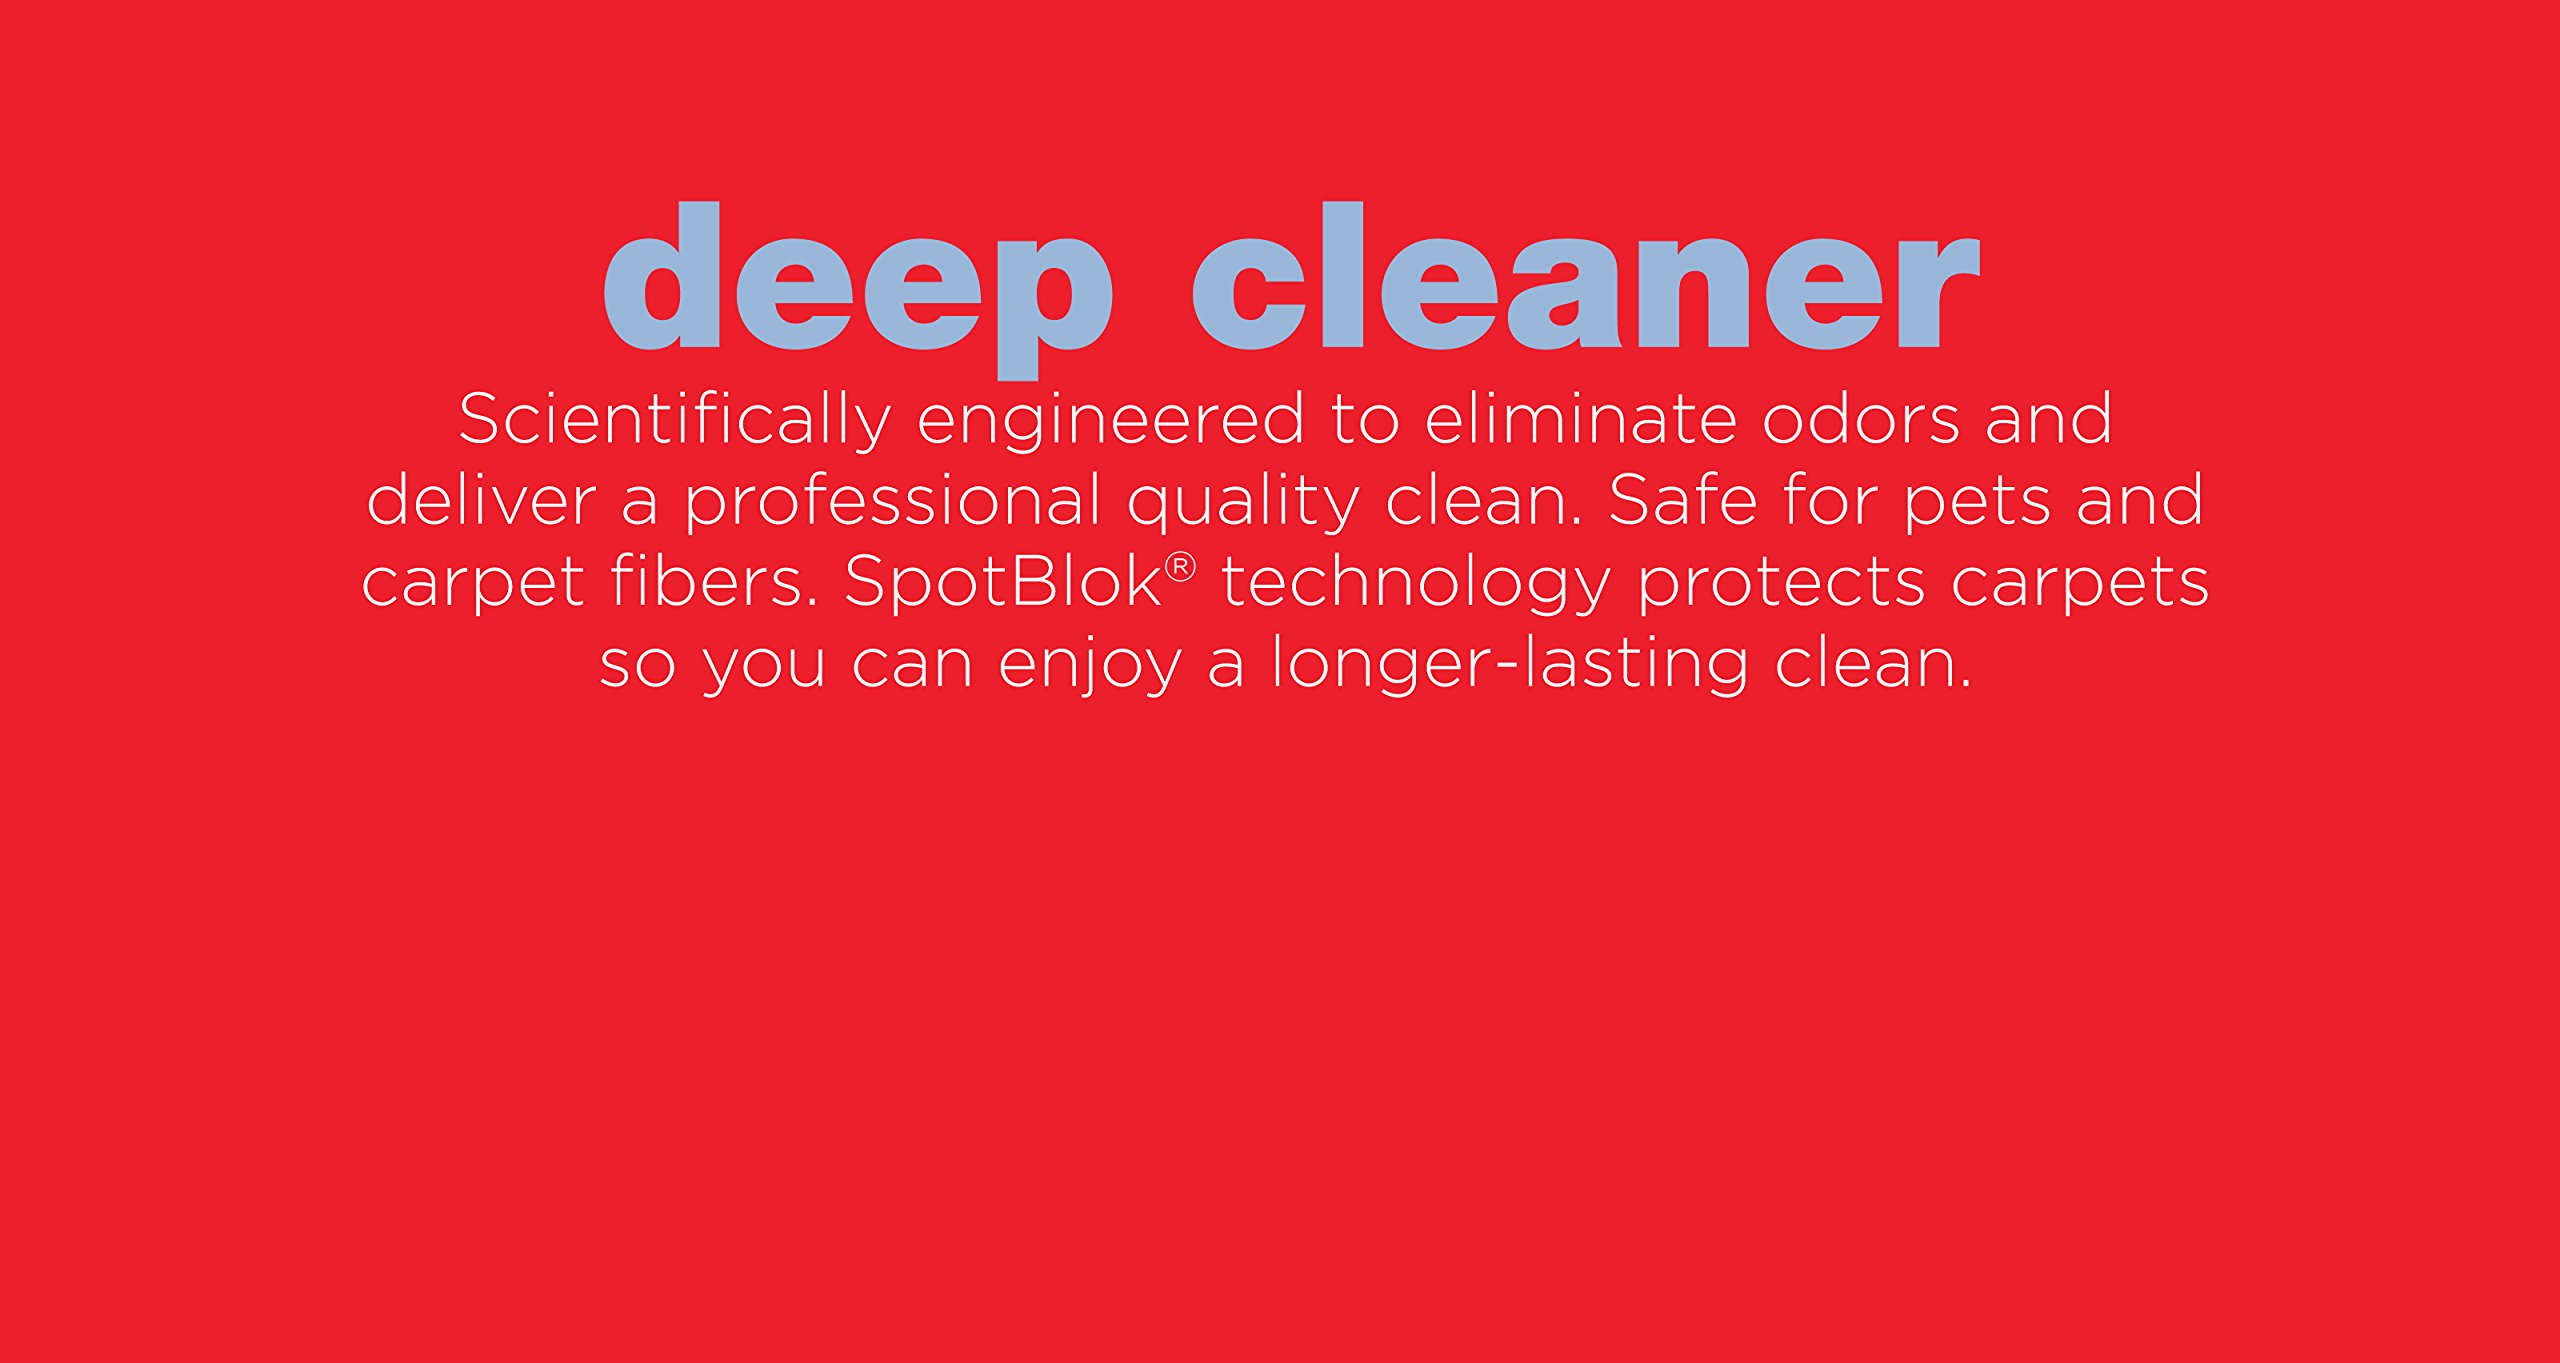 Rug Doctor Oxy Deep Cleaner Solution for Rental Cleaners, Non-Toxic Deodorizing Formula with Oxygen Power to Lift Stains and Spots, 96 oz. by Rug Doctor (Image #7)